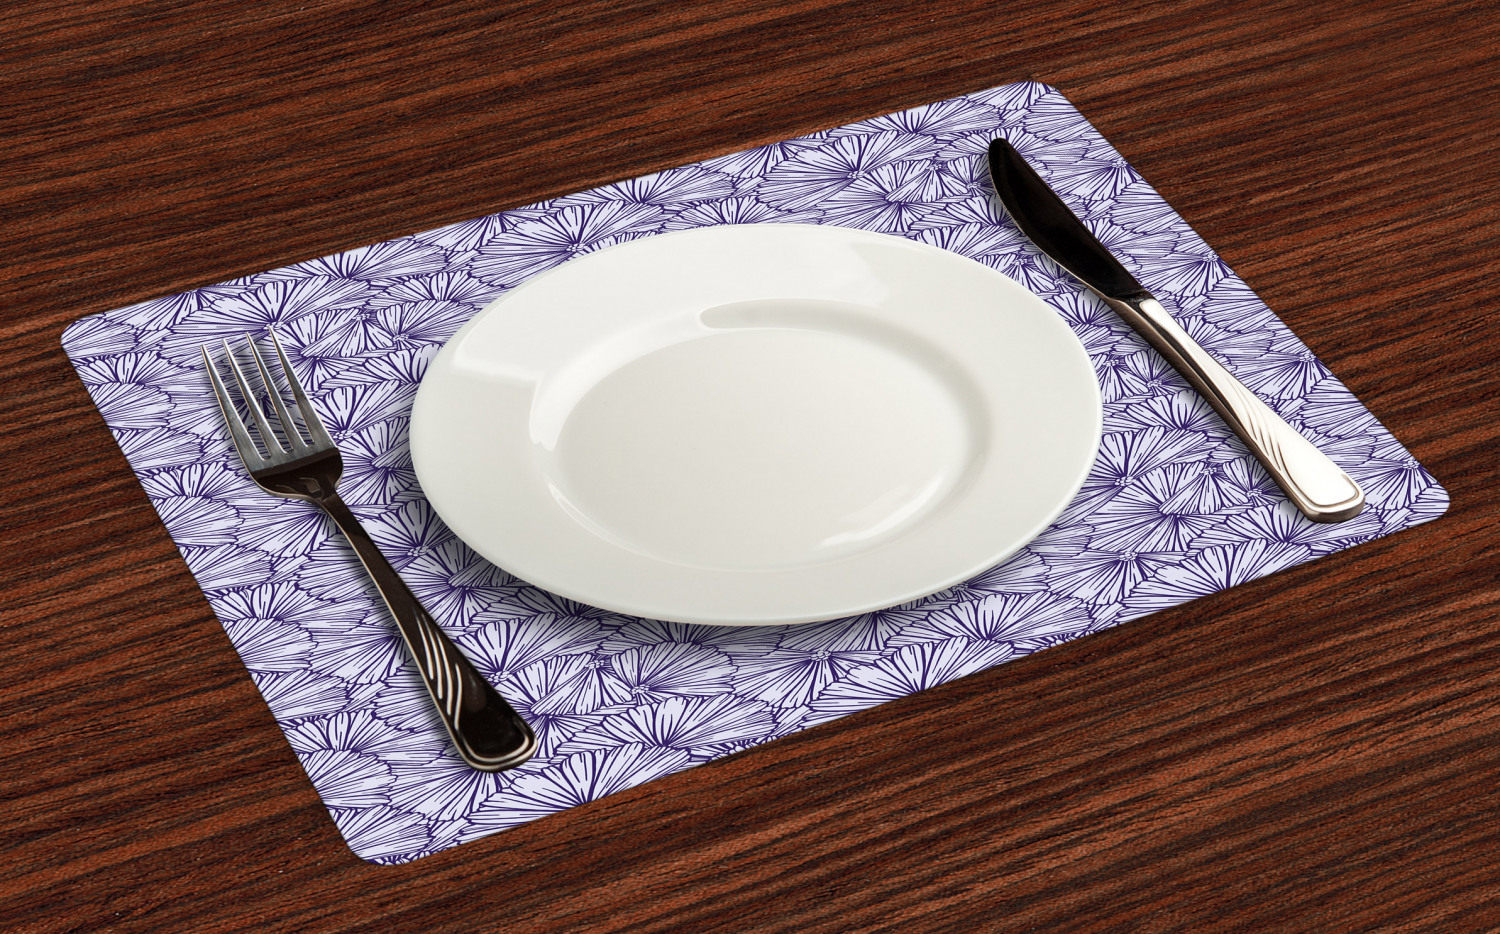 Ambesonne-Flower-Pattern-Placemat-Set-of-4-Fabric-Place-Mats-for-Table-Decor thumbnail 85